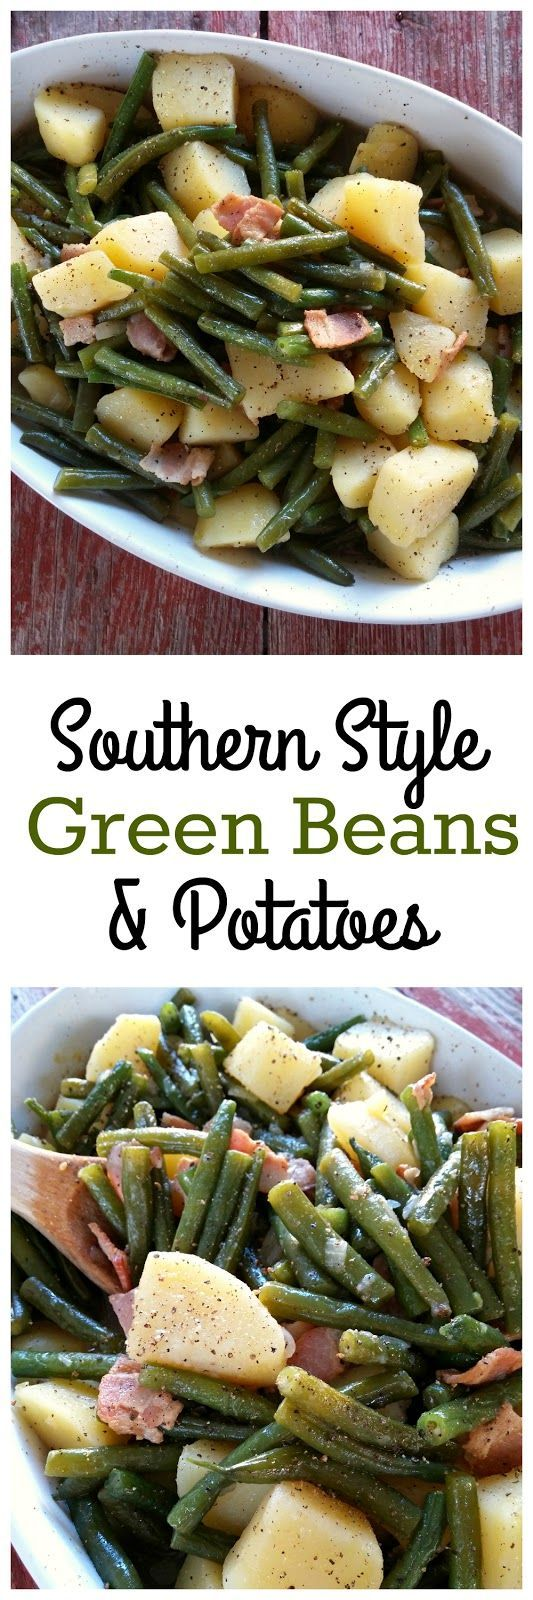 Southern Style Green Beans & Potatoes cooked low and slow (recipe includes both stove-top and crock pot instructions)